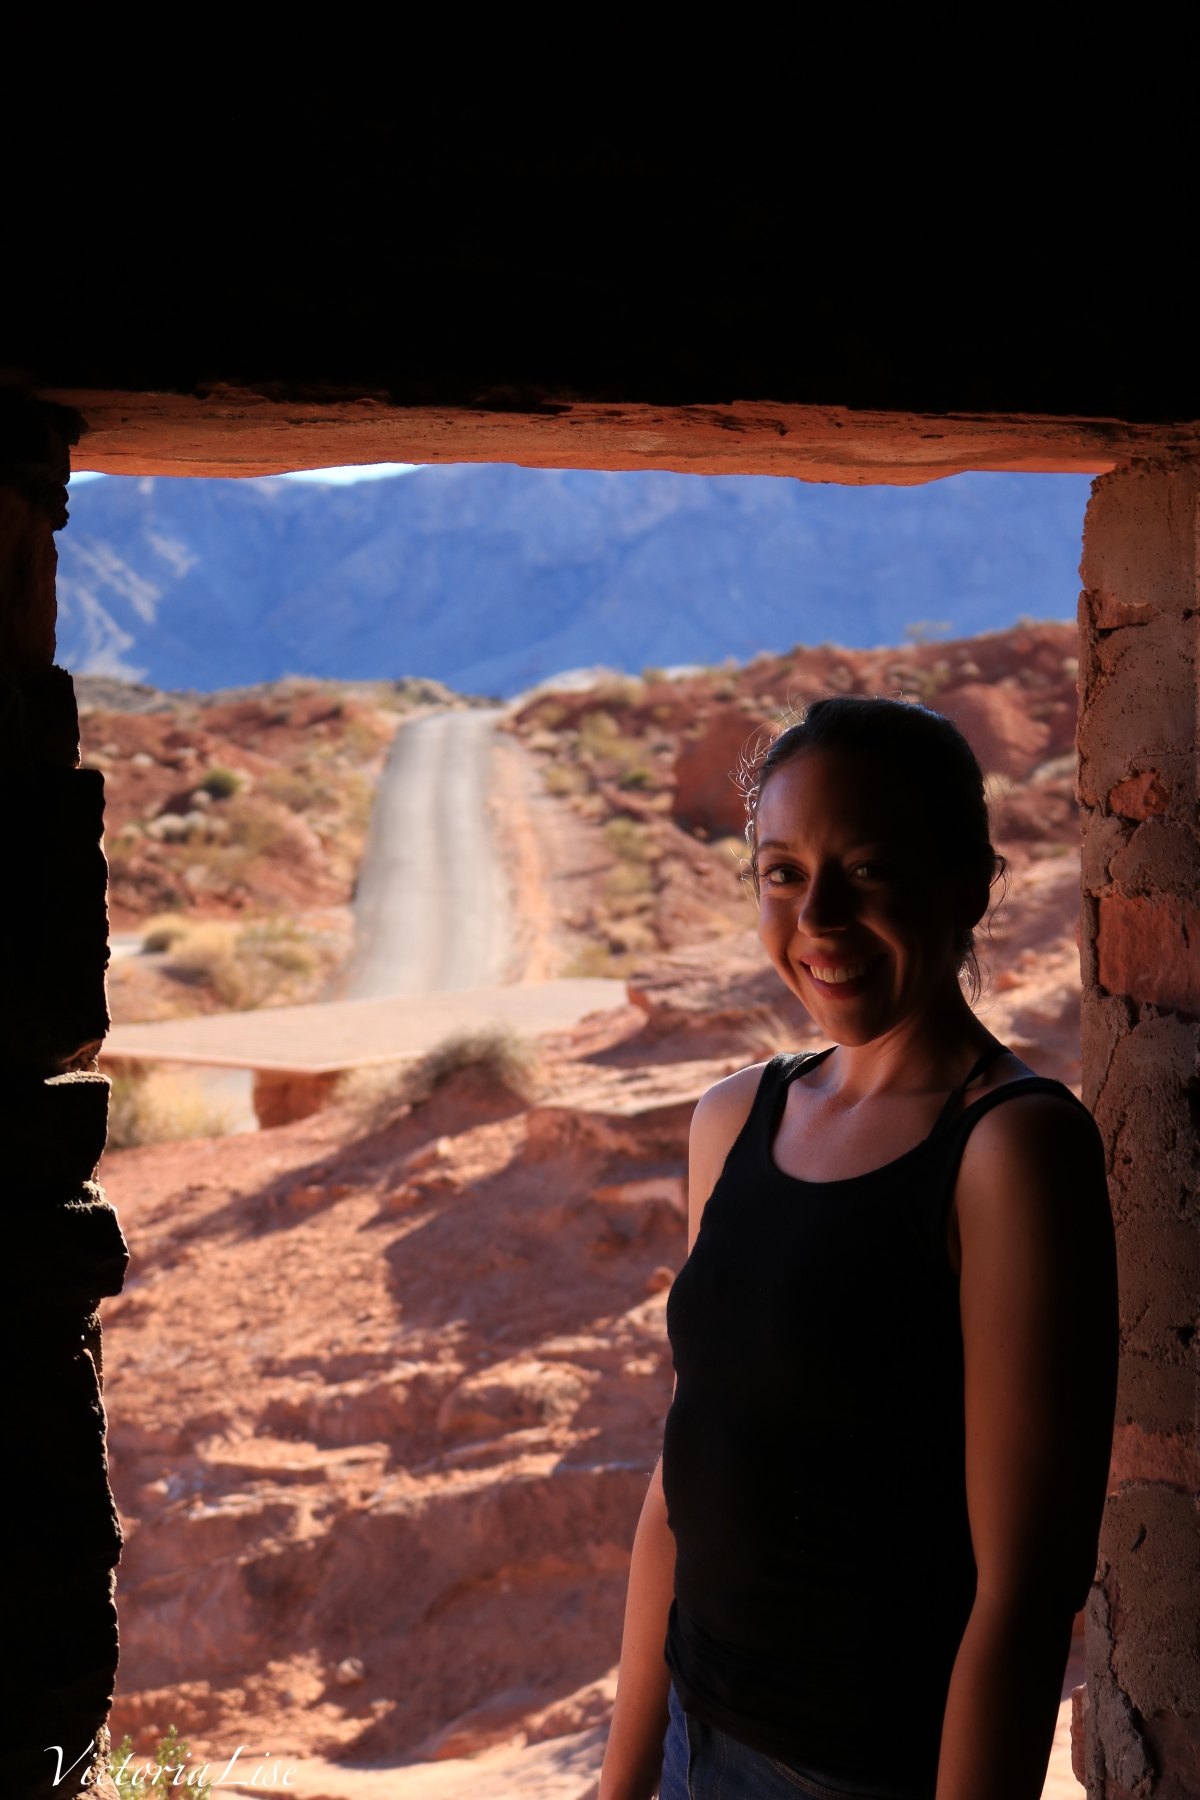 Victoria Lise in Mojave desert doorway.